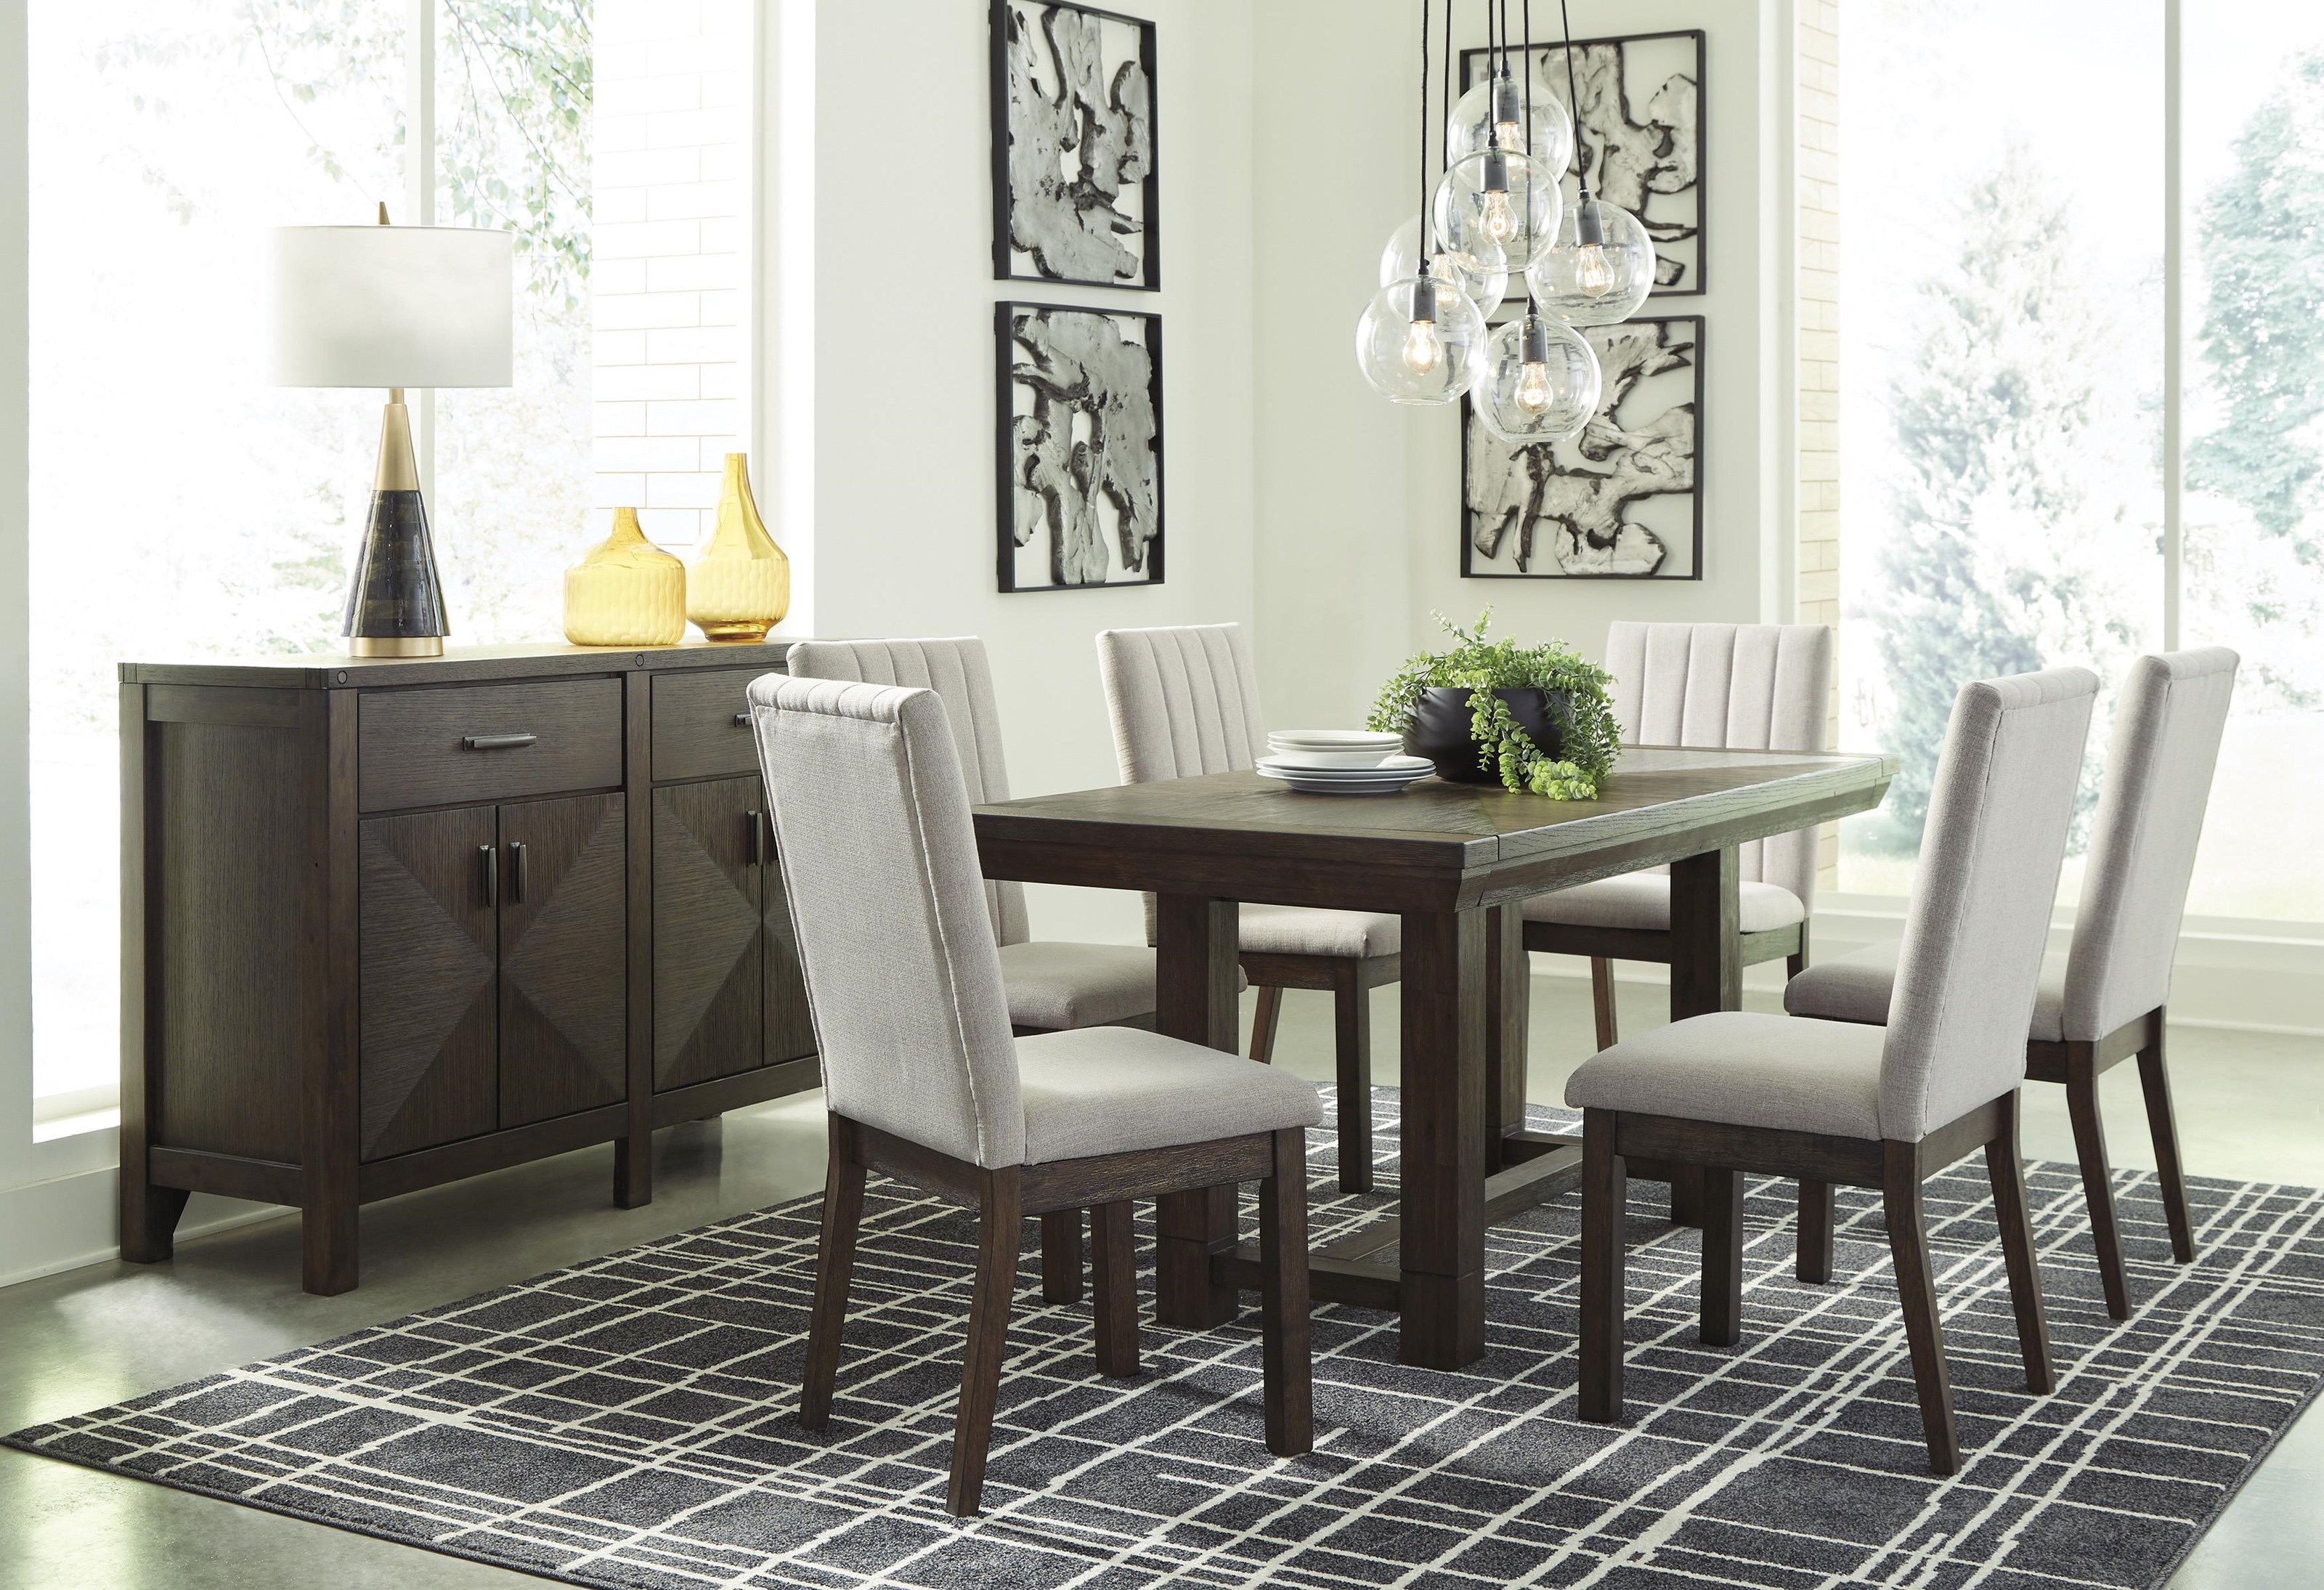 Ashley Furniture Dellbeck D748 45 6x01 60 8 Pc Table 6 Uph Side Chairs And Server Set Sam Levitz Furniture Dining 7 Or More Piece Sets